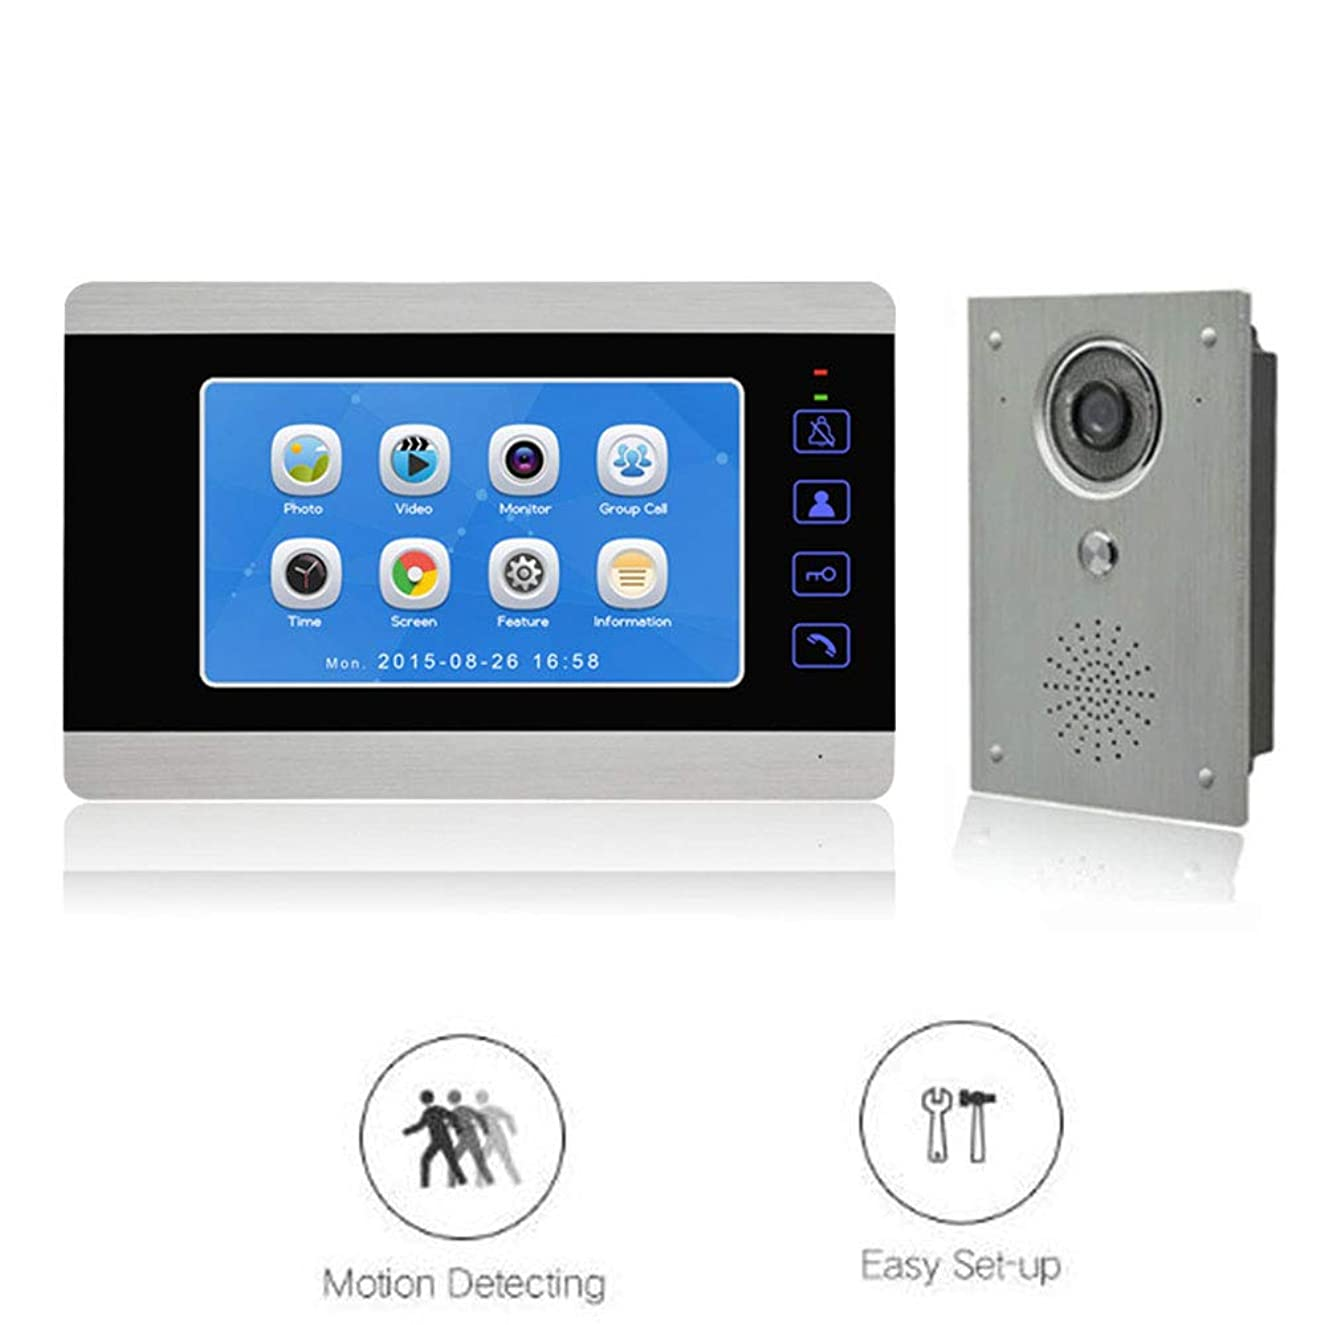 Video Doorphone Wired Hd Camera Video Doorbell 7-inch Color Monitor Home Security System Mobile Monitoring Infrared Night Vision Intercom System